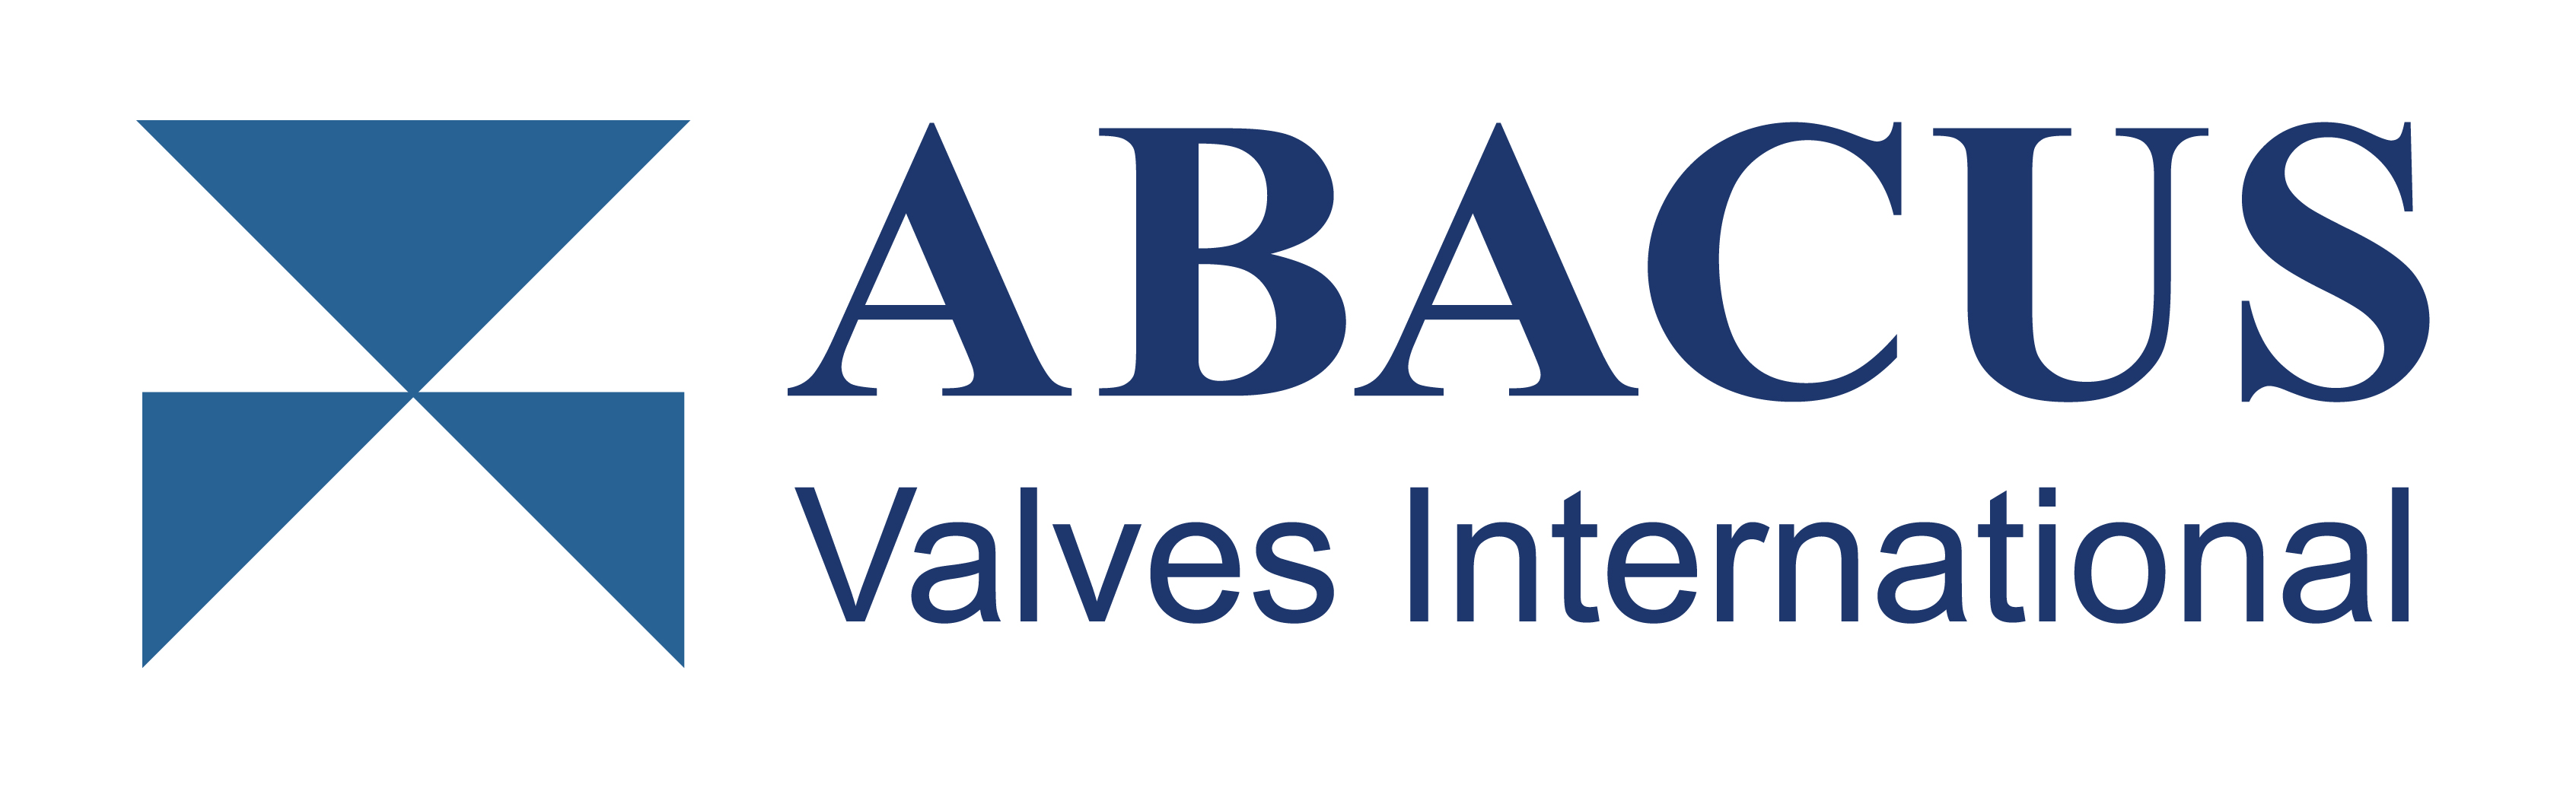 Abacus Valves International Ltd.